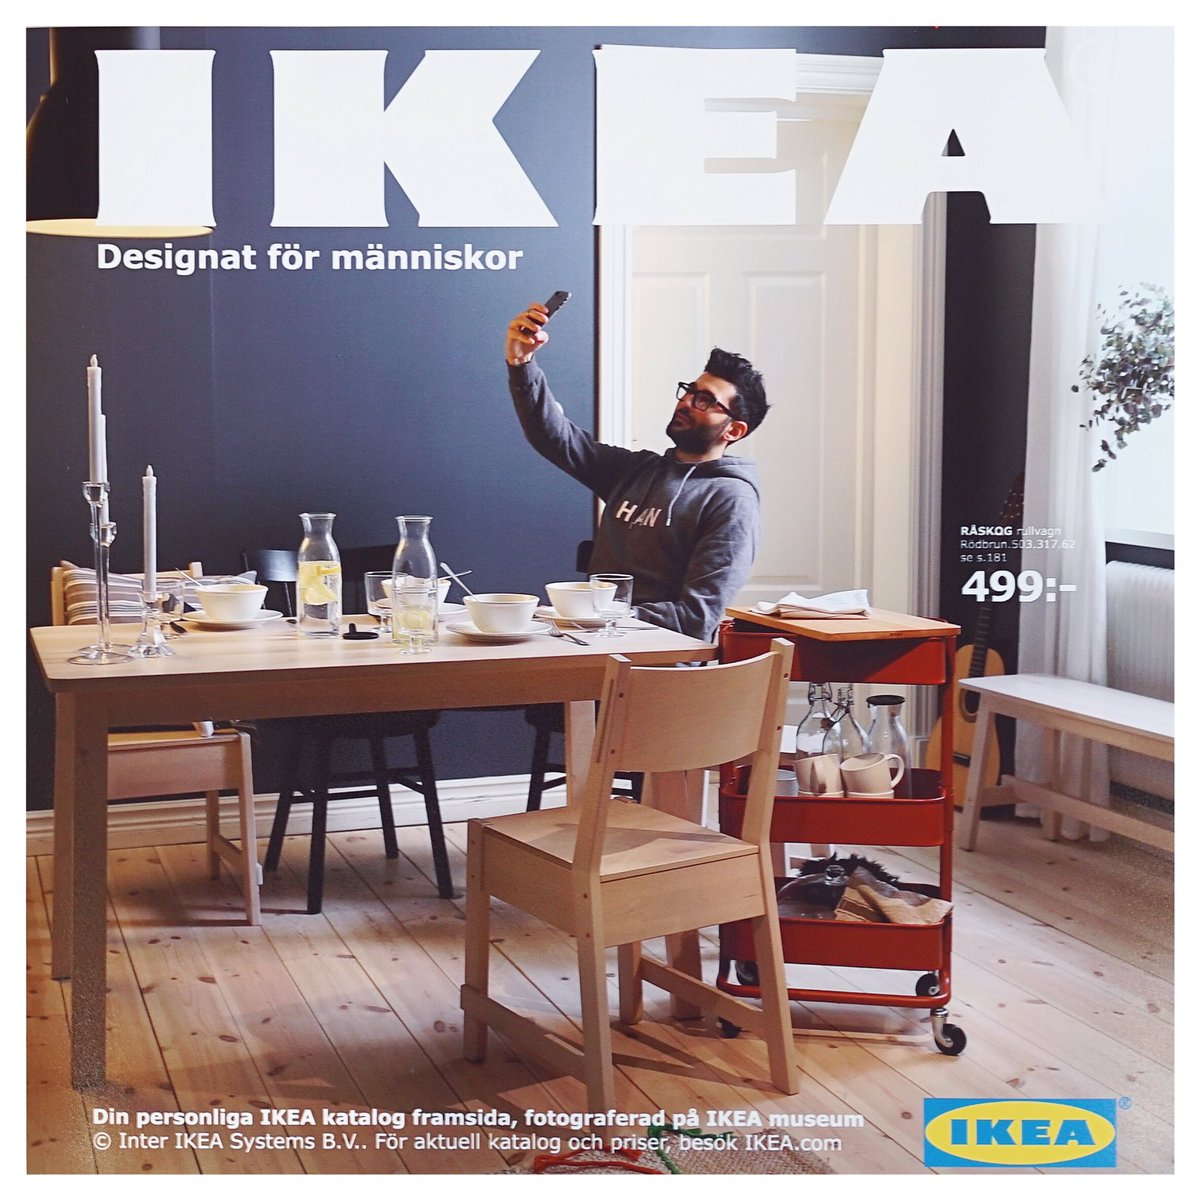 jo yana on twitter ikea catalogue 2018. Black Bedroom Furniture Sets. Home Design Ideas